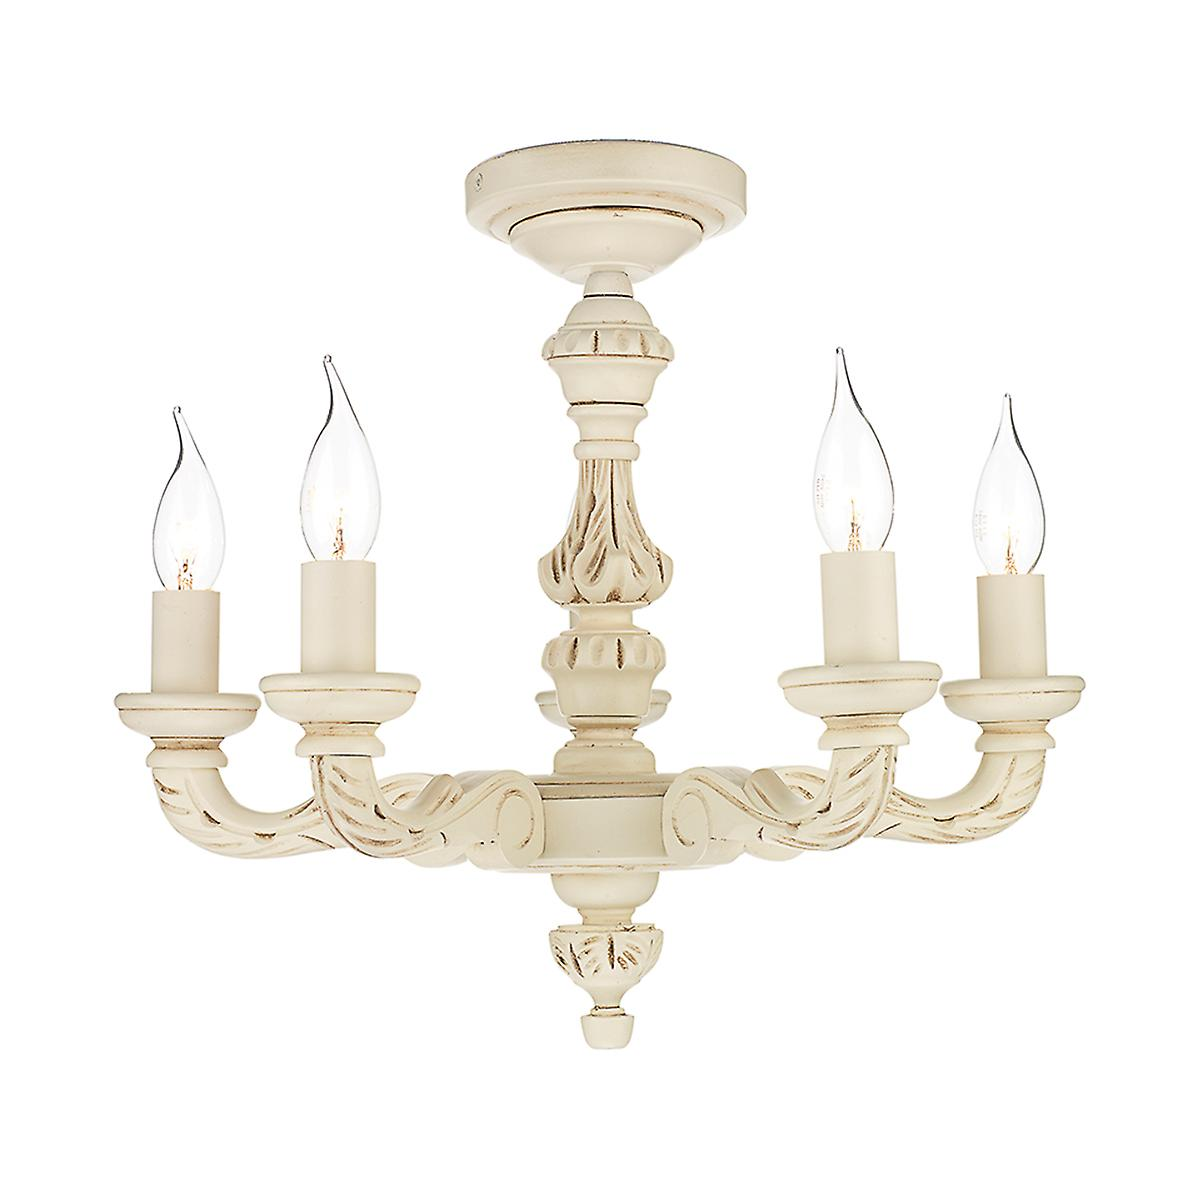 David Hunt TUD0533 Tudor 5 Light Dual Mount Pendant With A Cream Finish